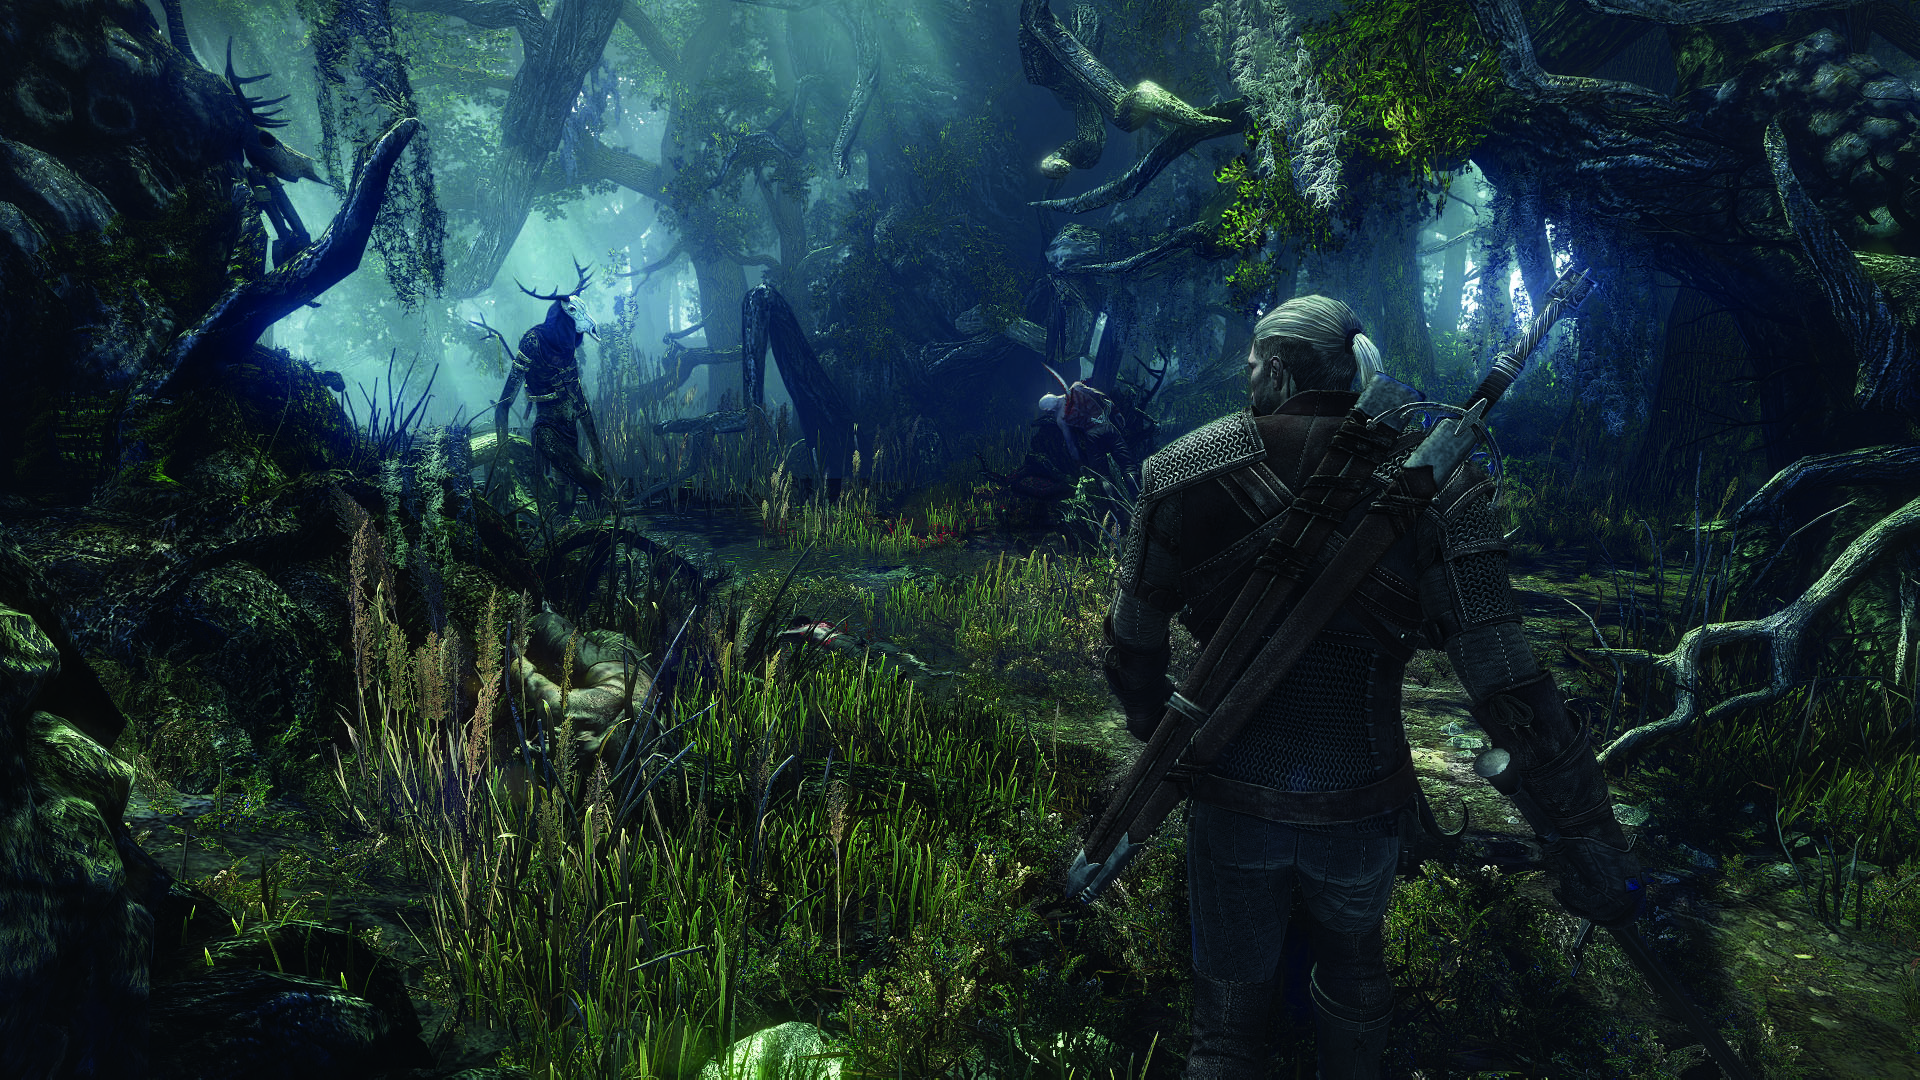 6258_The_Witcher_3_Wild_Hunt_Geralt_Facing_Leshen.jpg